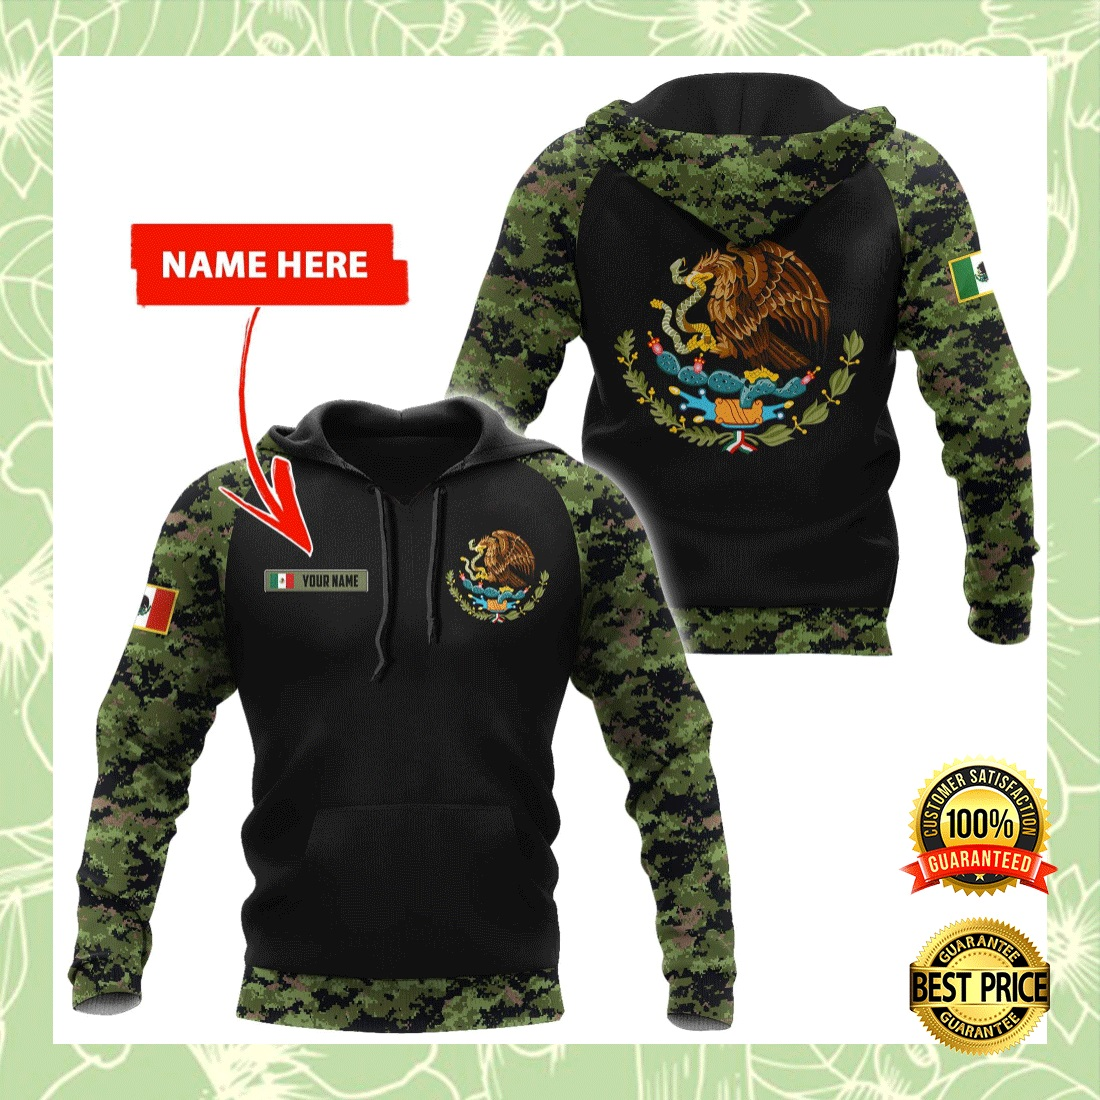 PERSONALIZED MEXICAN COAT CAMO ALL OVER PRINTED 3D HOODIE 5